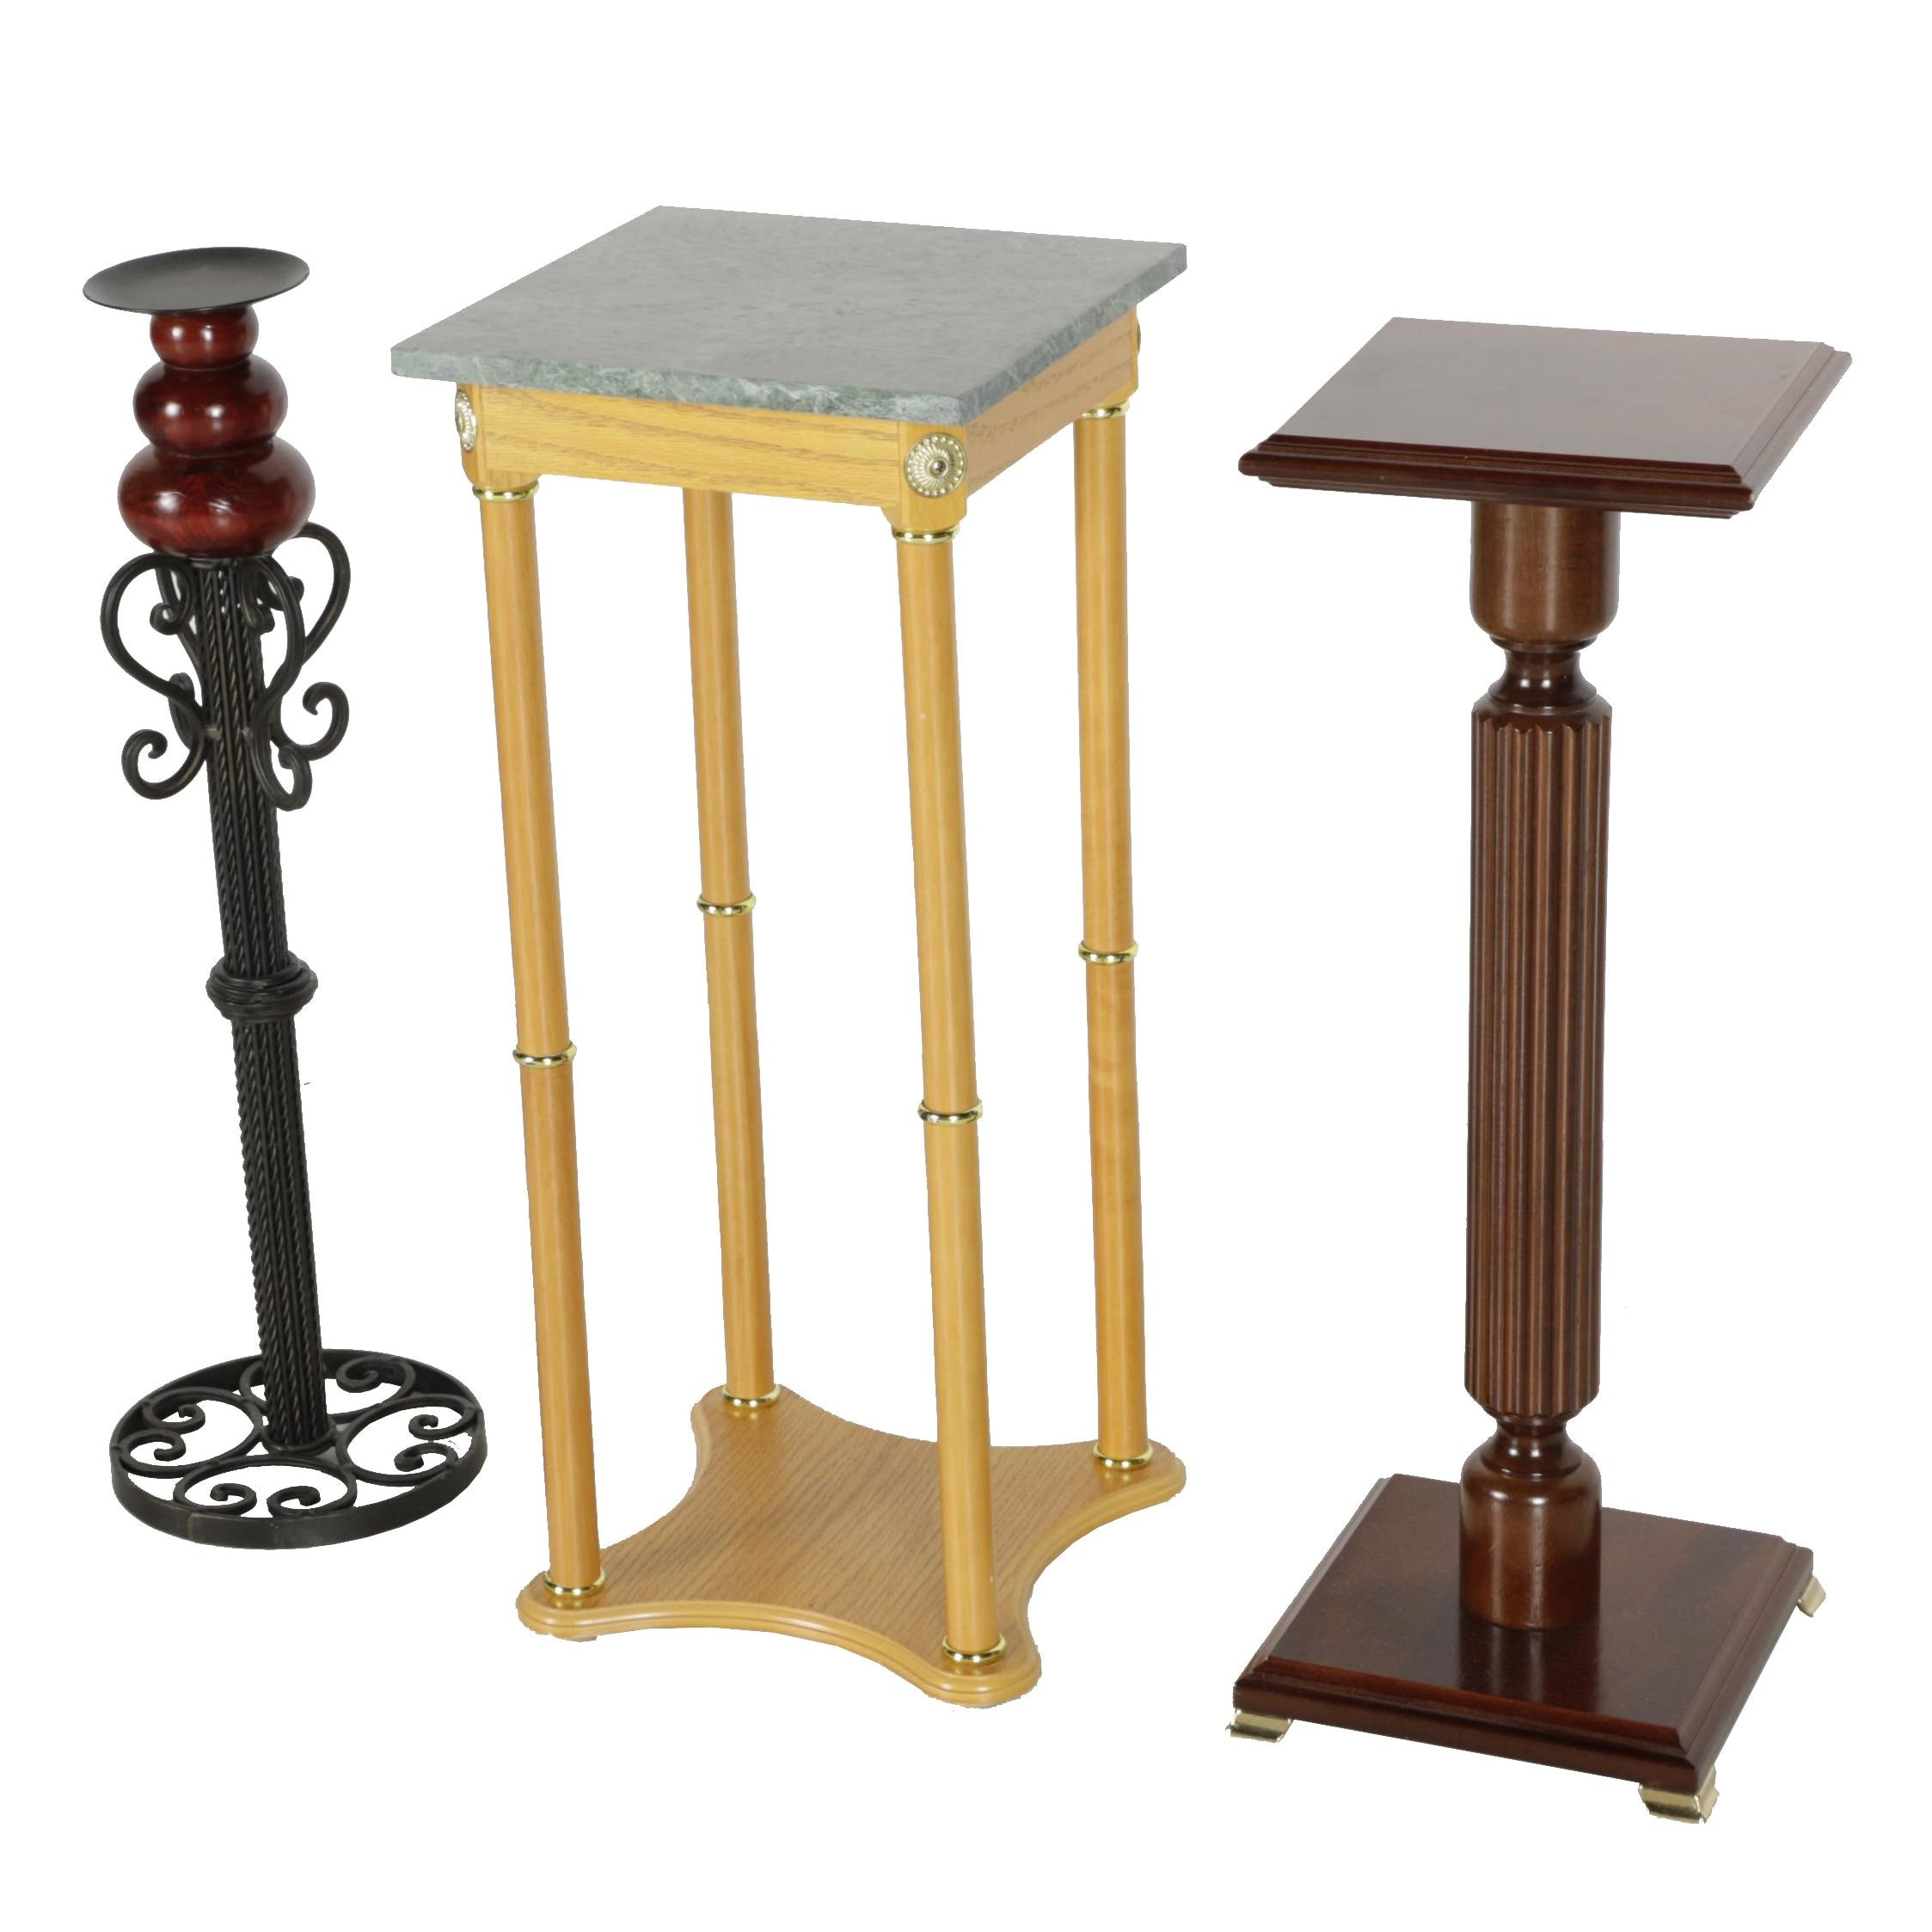 Marble Top Side Table With Pedestal Side Table and Candle Stand